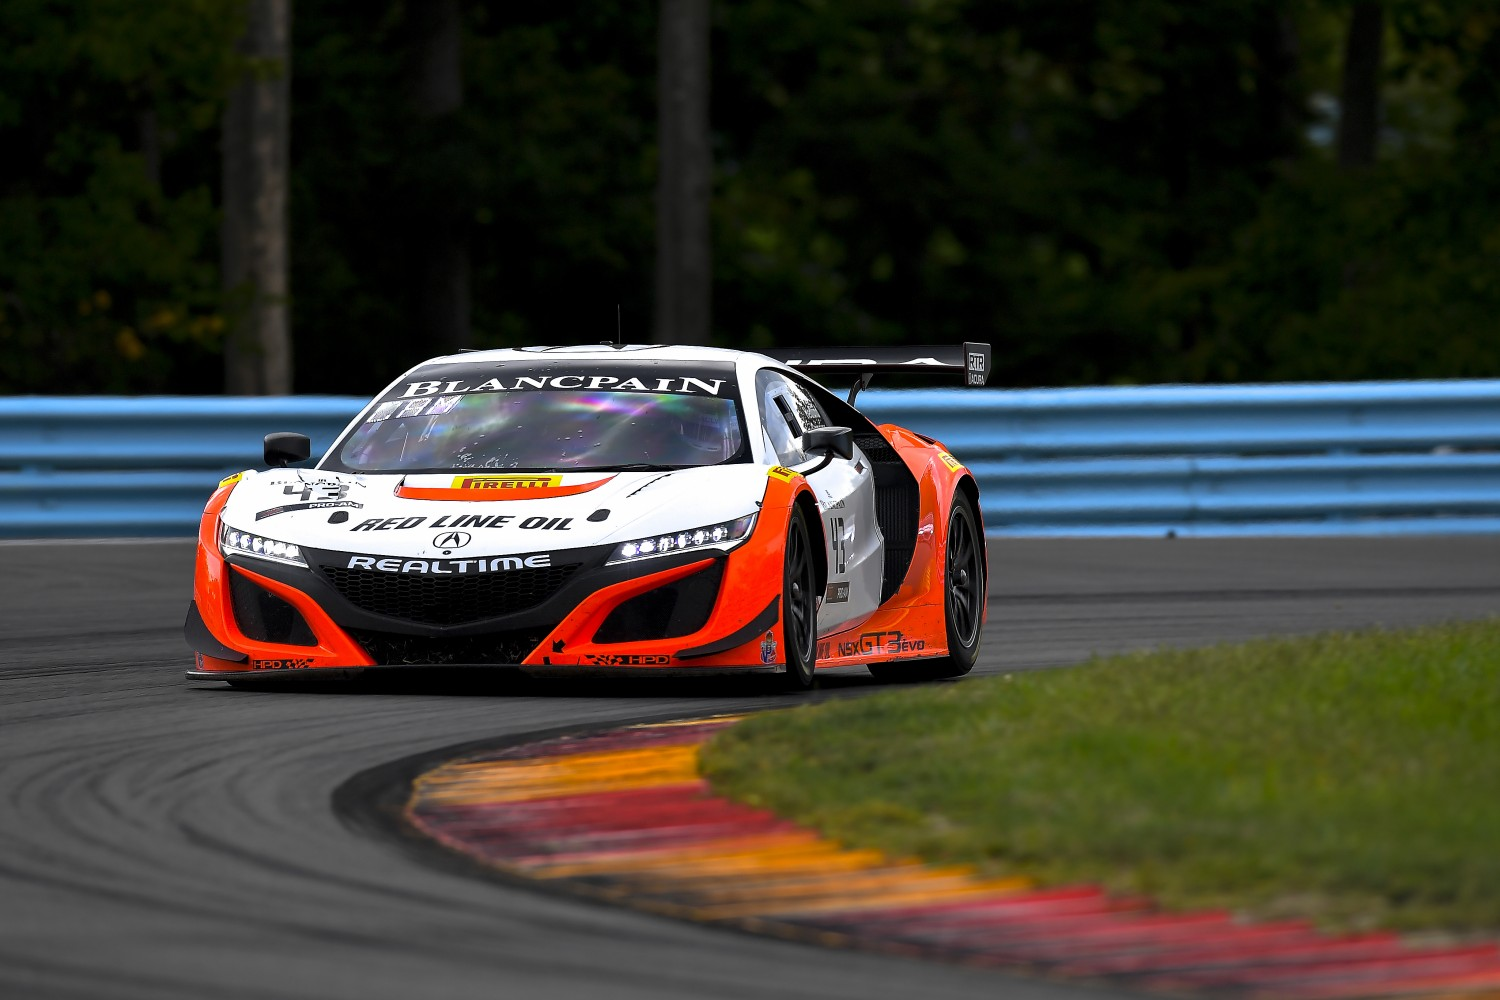 #43 Acura NSX of Mike Hedlund and Dane Cameron with RealTime Racing  Watkins Glen World Challenge America , Watkins Glen NY   | Gavin Baker/SRO